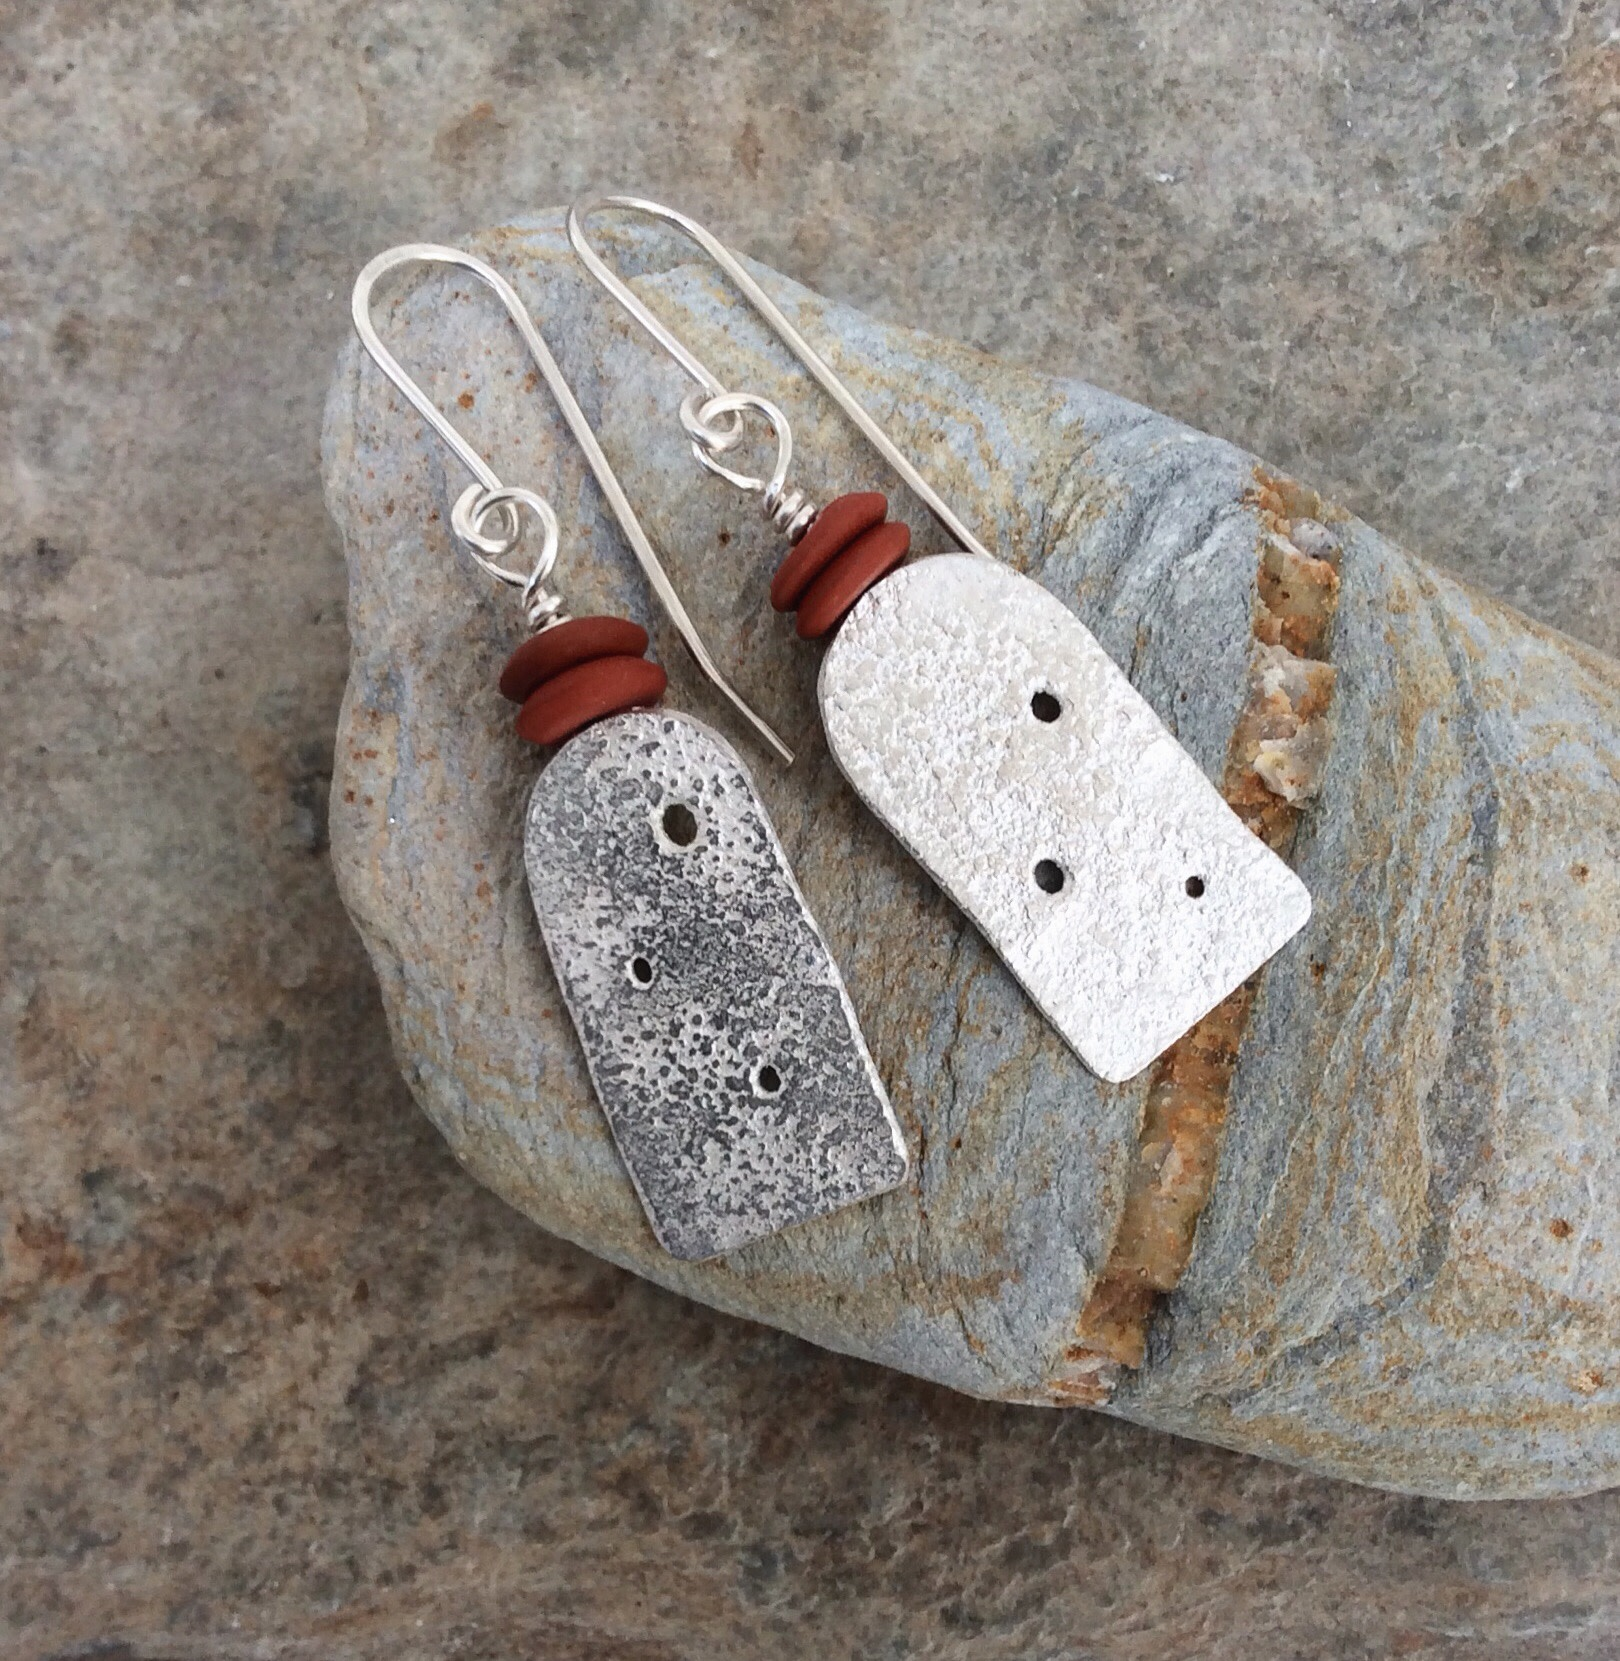 "<span class=""link fancybox-details-link""><a href=""/artists/148-roberta-hopkins/works/6704-roberta-hopkins-red-jasper-eroded-earrings-2019/"">View Detail Page</a></span><div class=""artist""><strong>Roberta Hopkins</strong></div> <div class=""title""><em>Red Jasper Eroded earrings</em>, 2019</div> <div class=""copyright_line"">Ownart: £3 x 10 Months, 0% APR</div>"